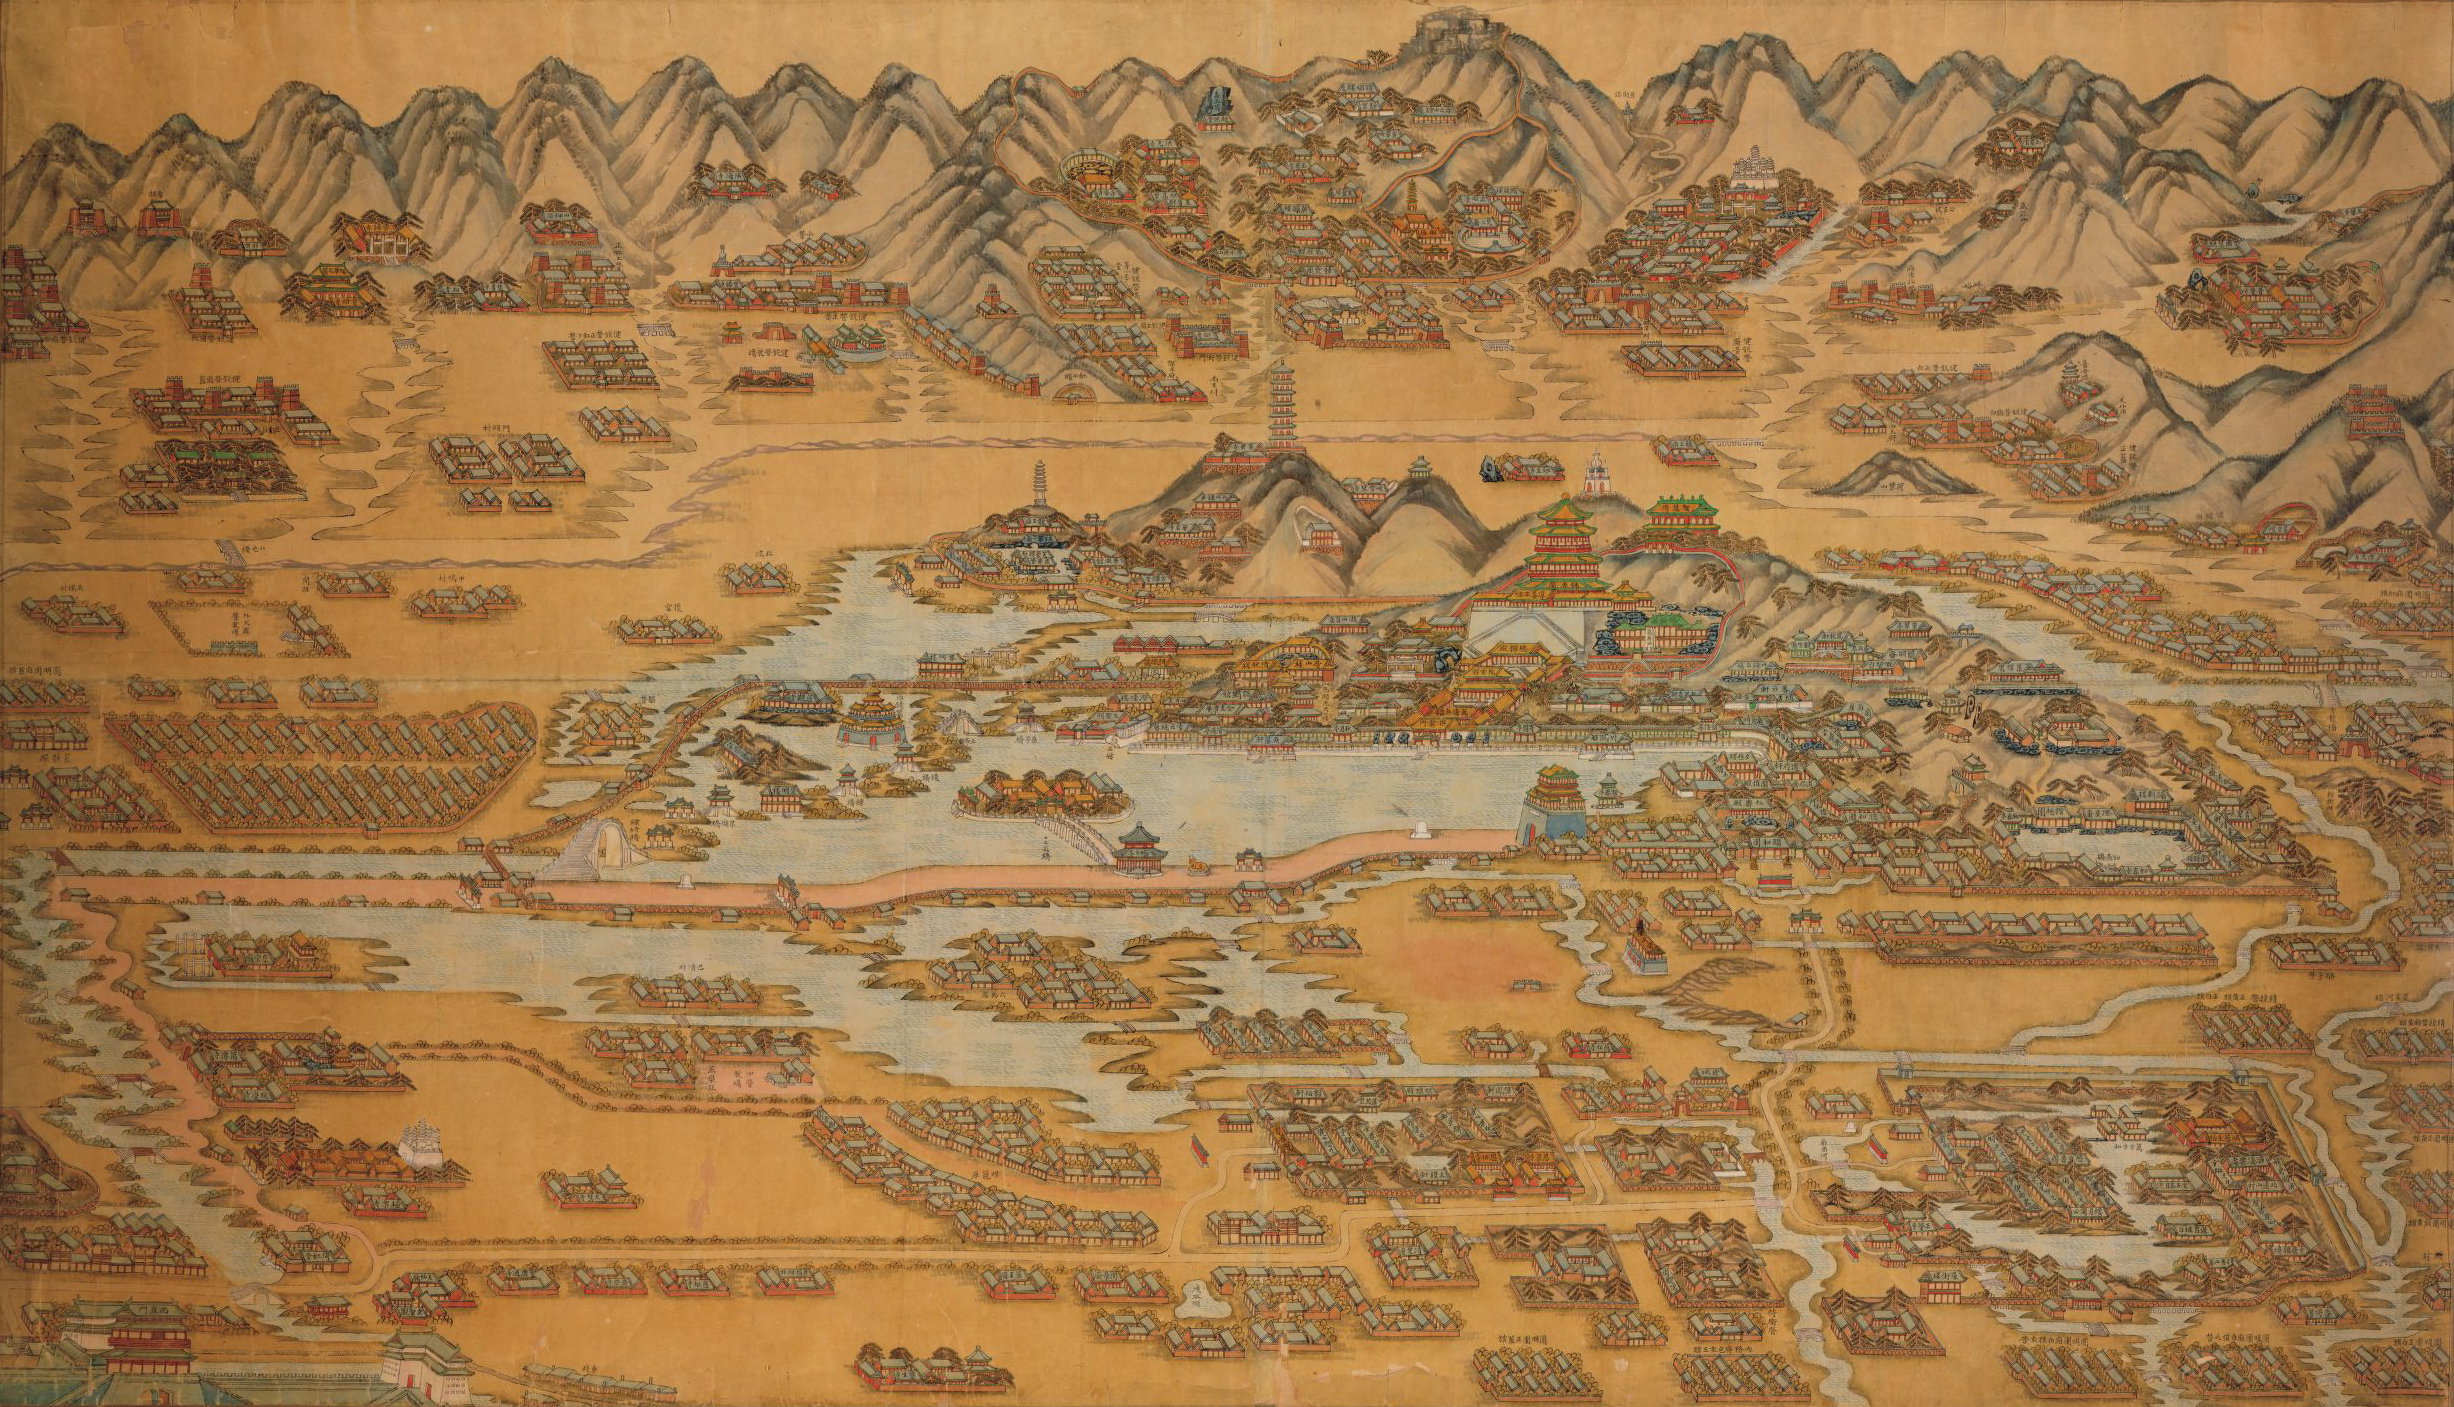 Eight Banners Brigade barracks, temples, villages, bridges, mountains, and the Summer Palace, Beijing, after 1888. Library of Congress, Geography and Map Division.